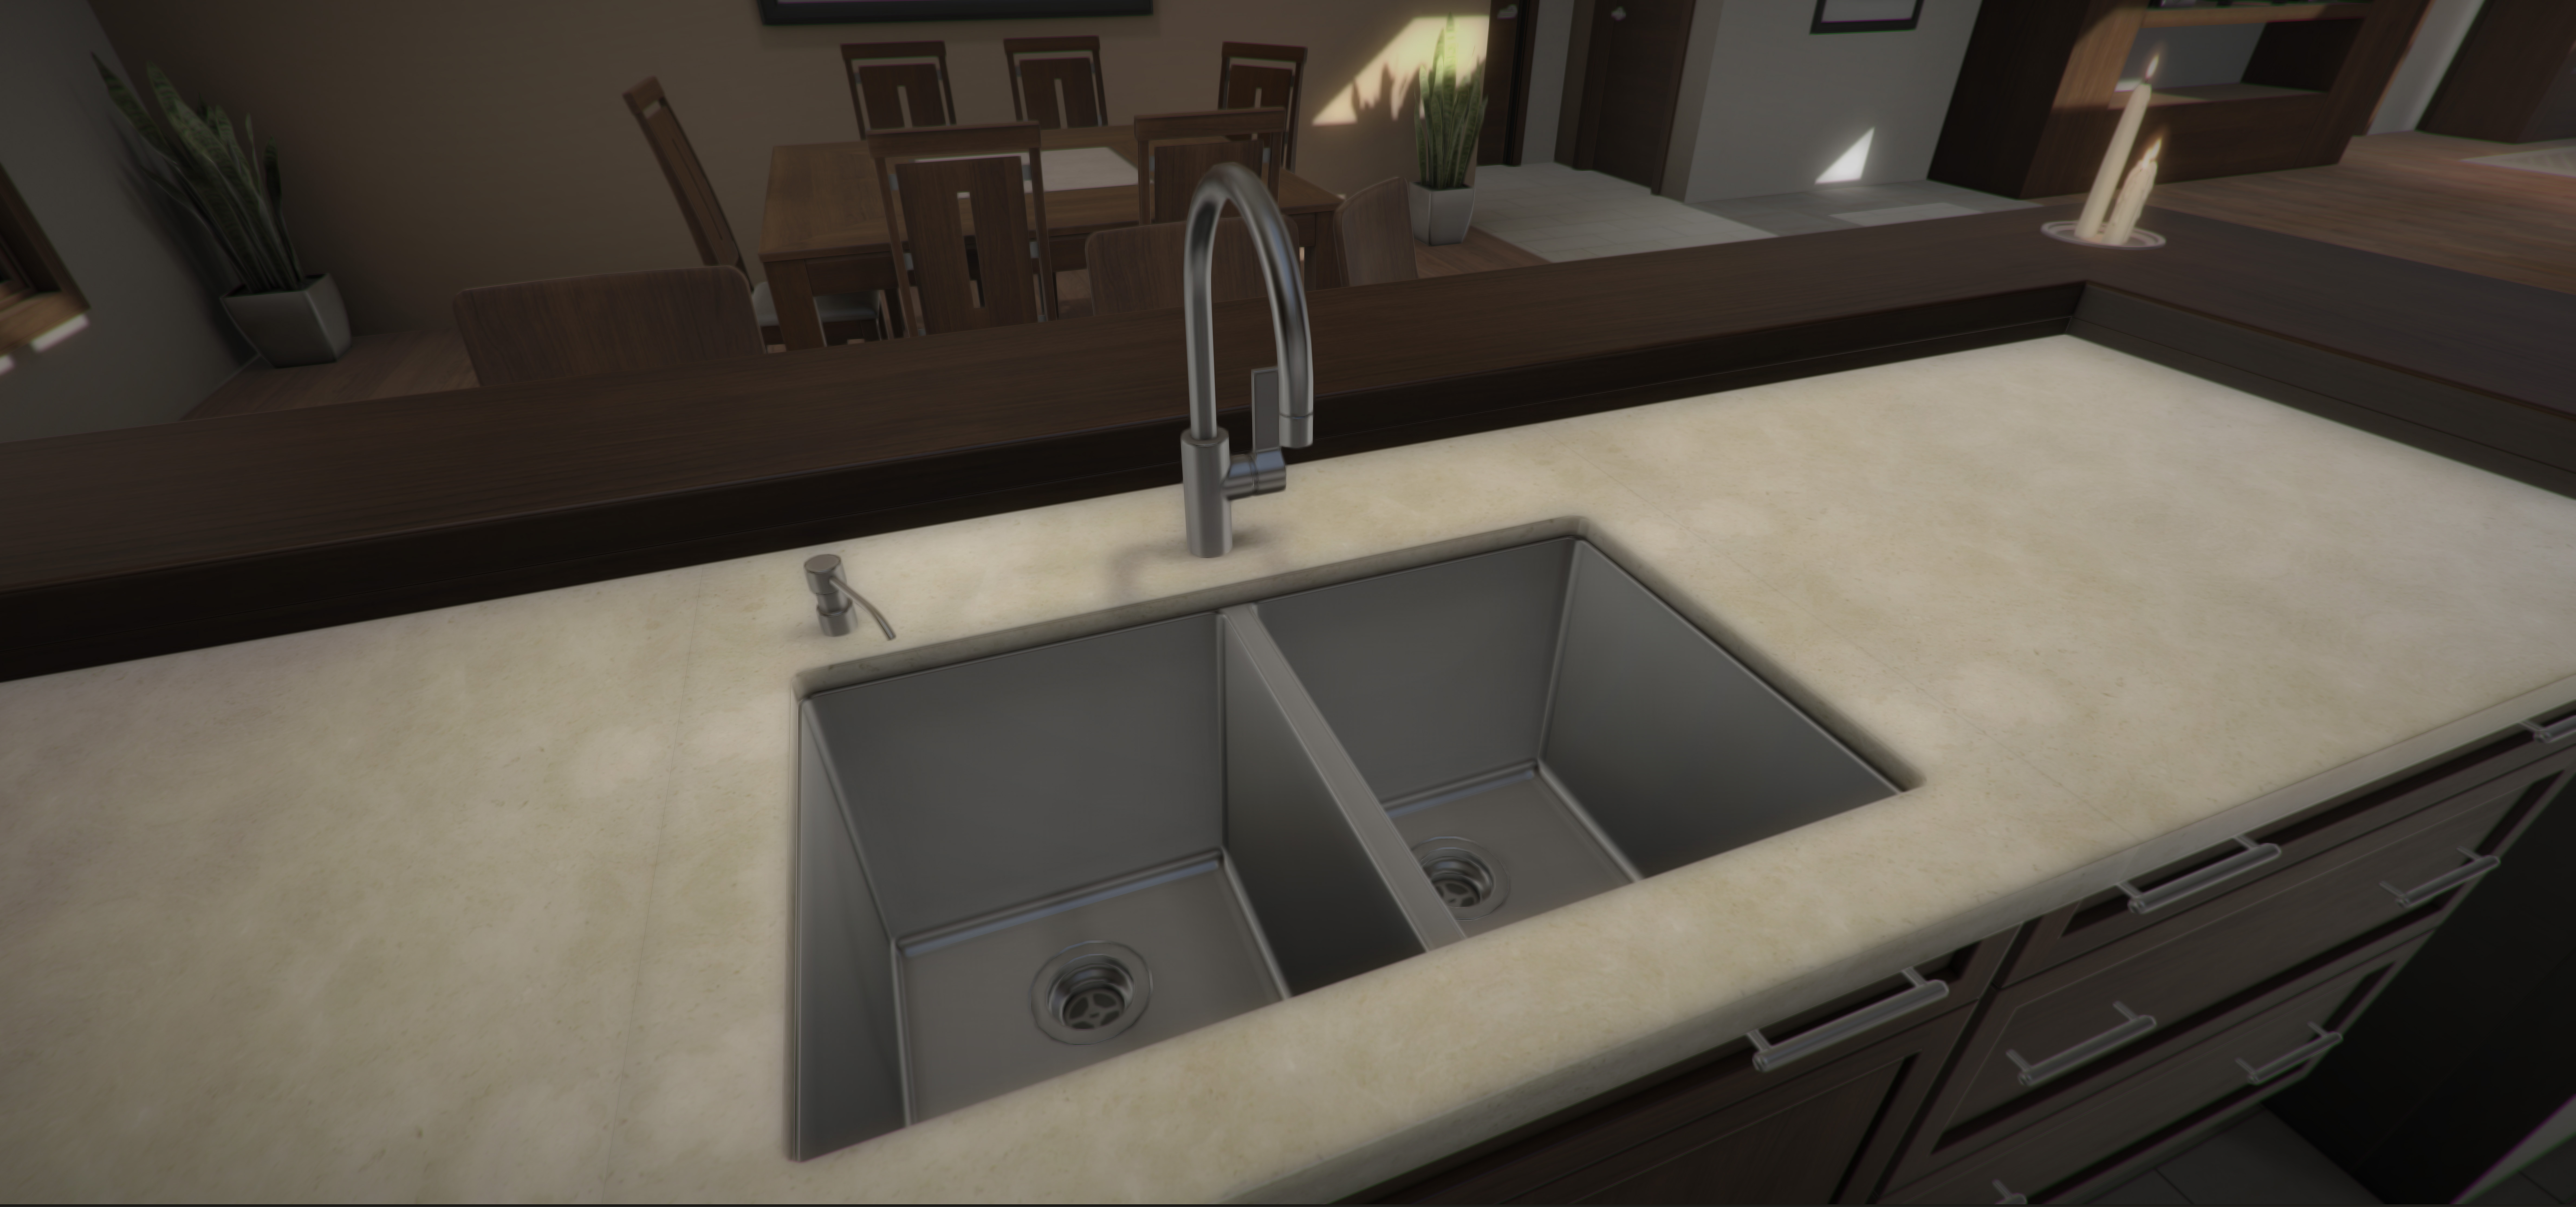 Kitchen configuration with virtual reality